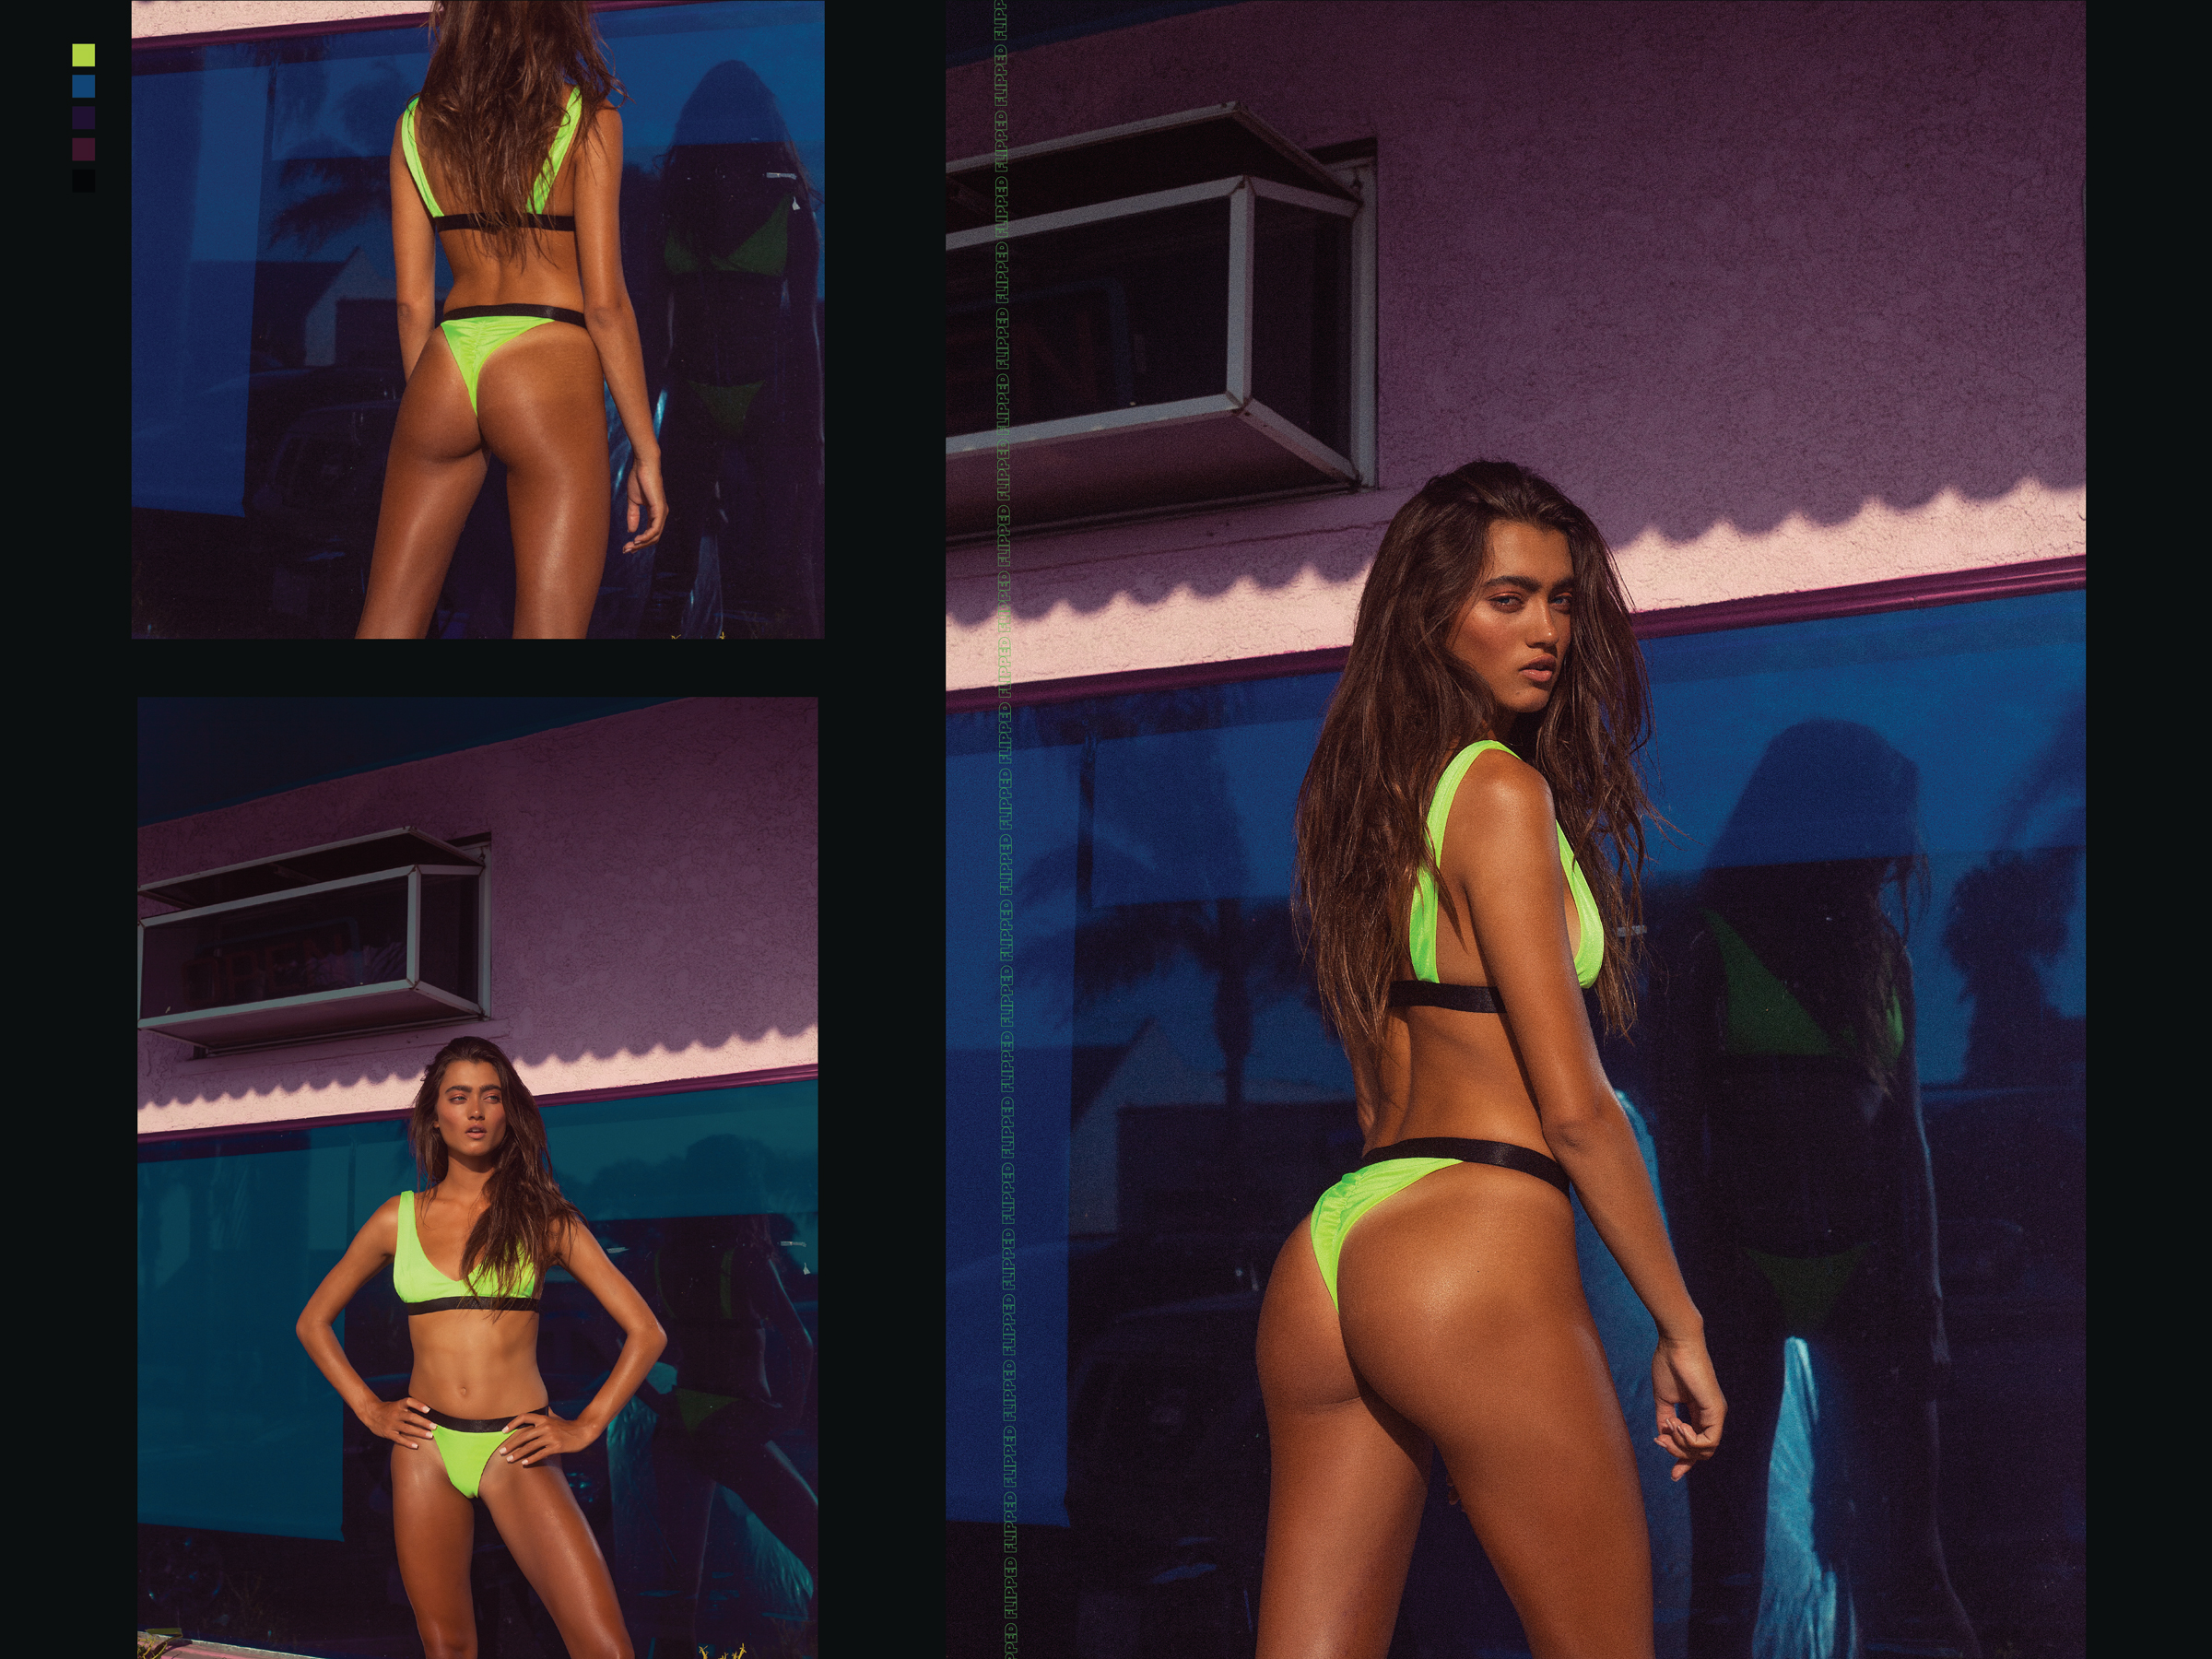 Lookbook design for Kokoa Swim brand, shot in Californina, 10/10